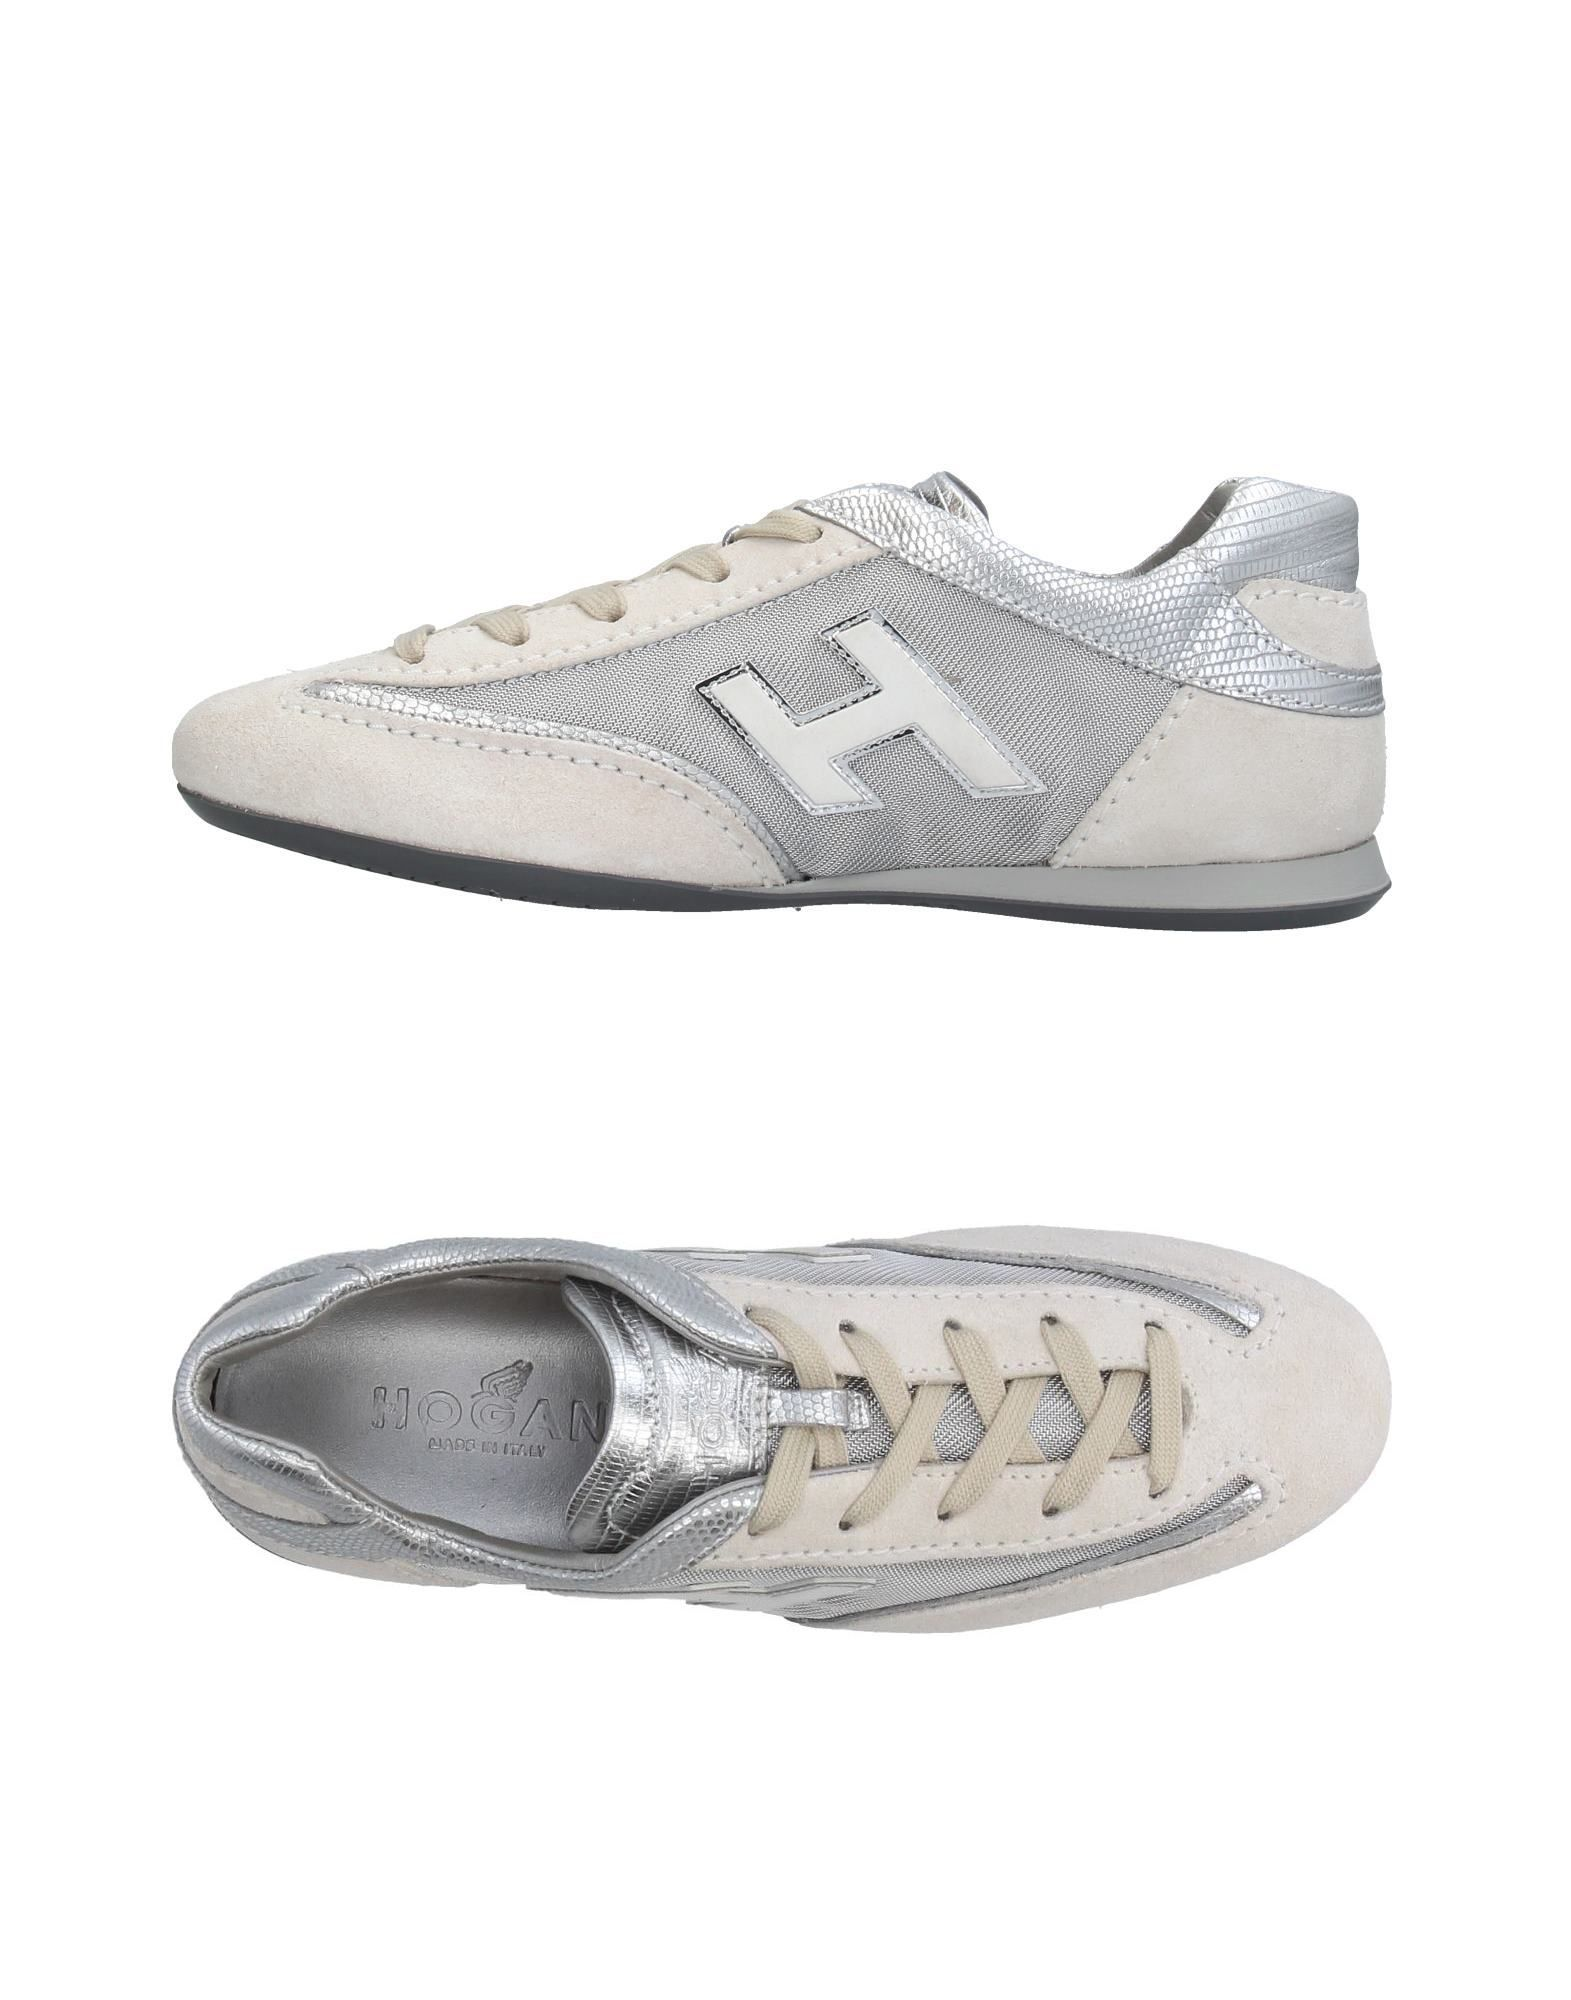 Sneakers Hogan Donna - Acquista online su